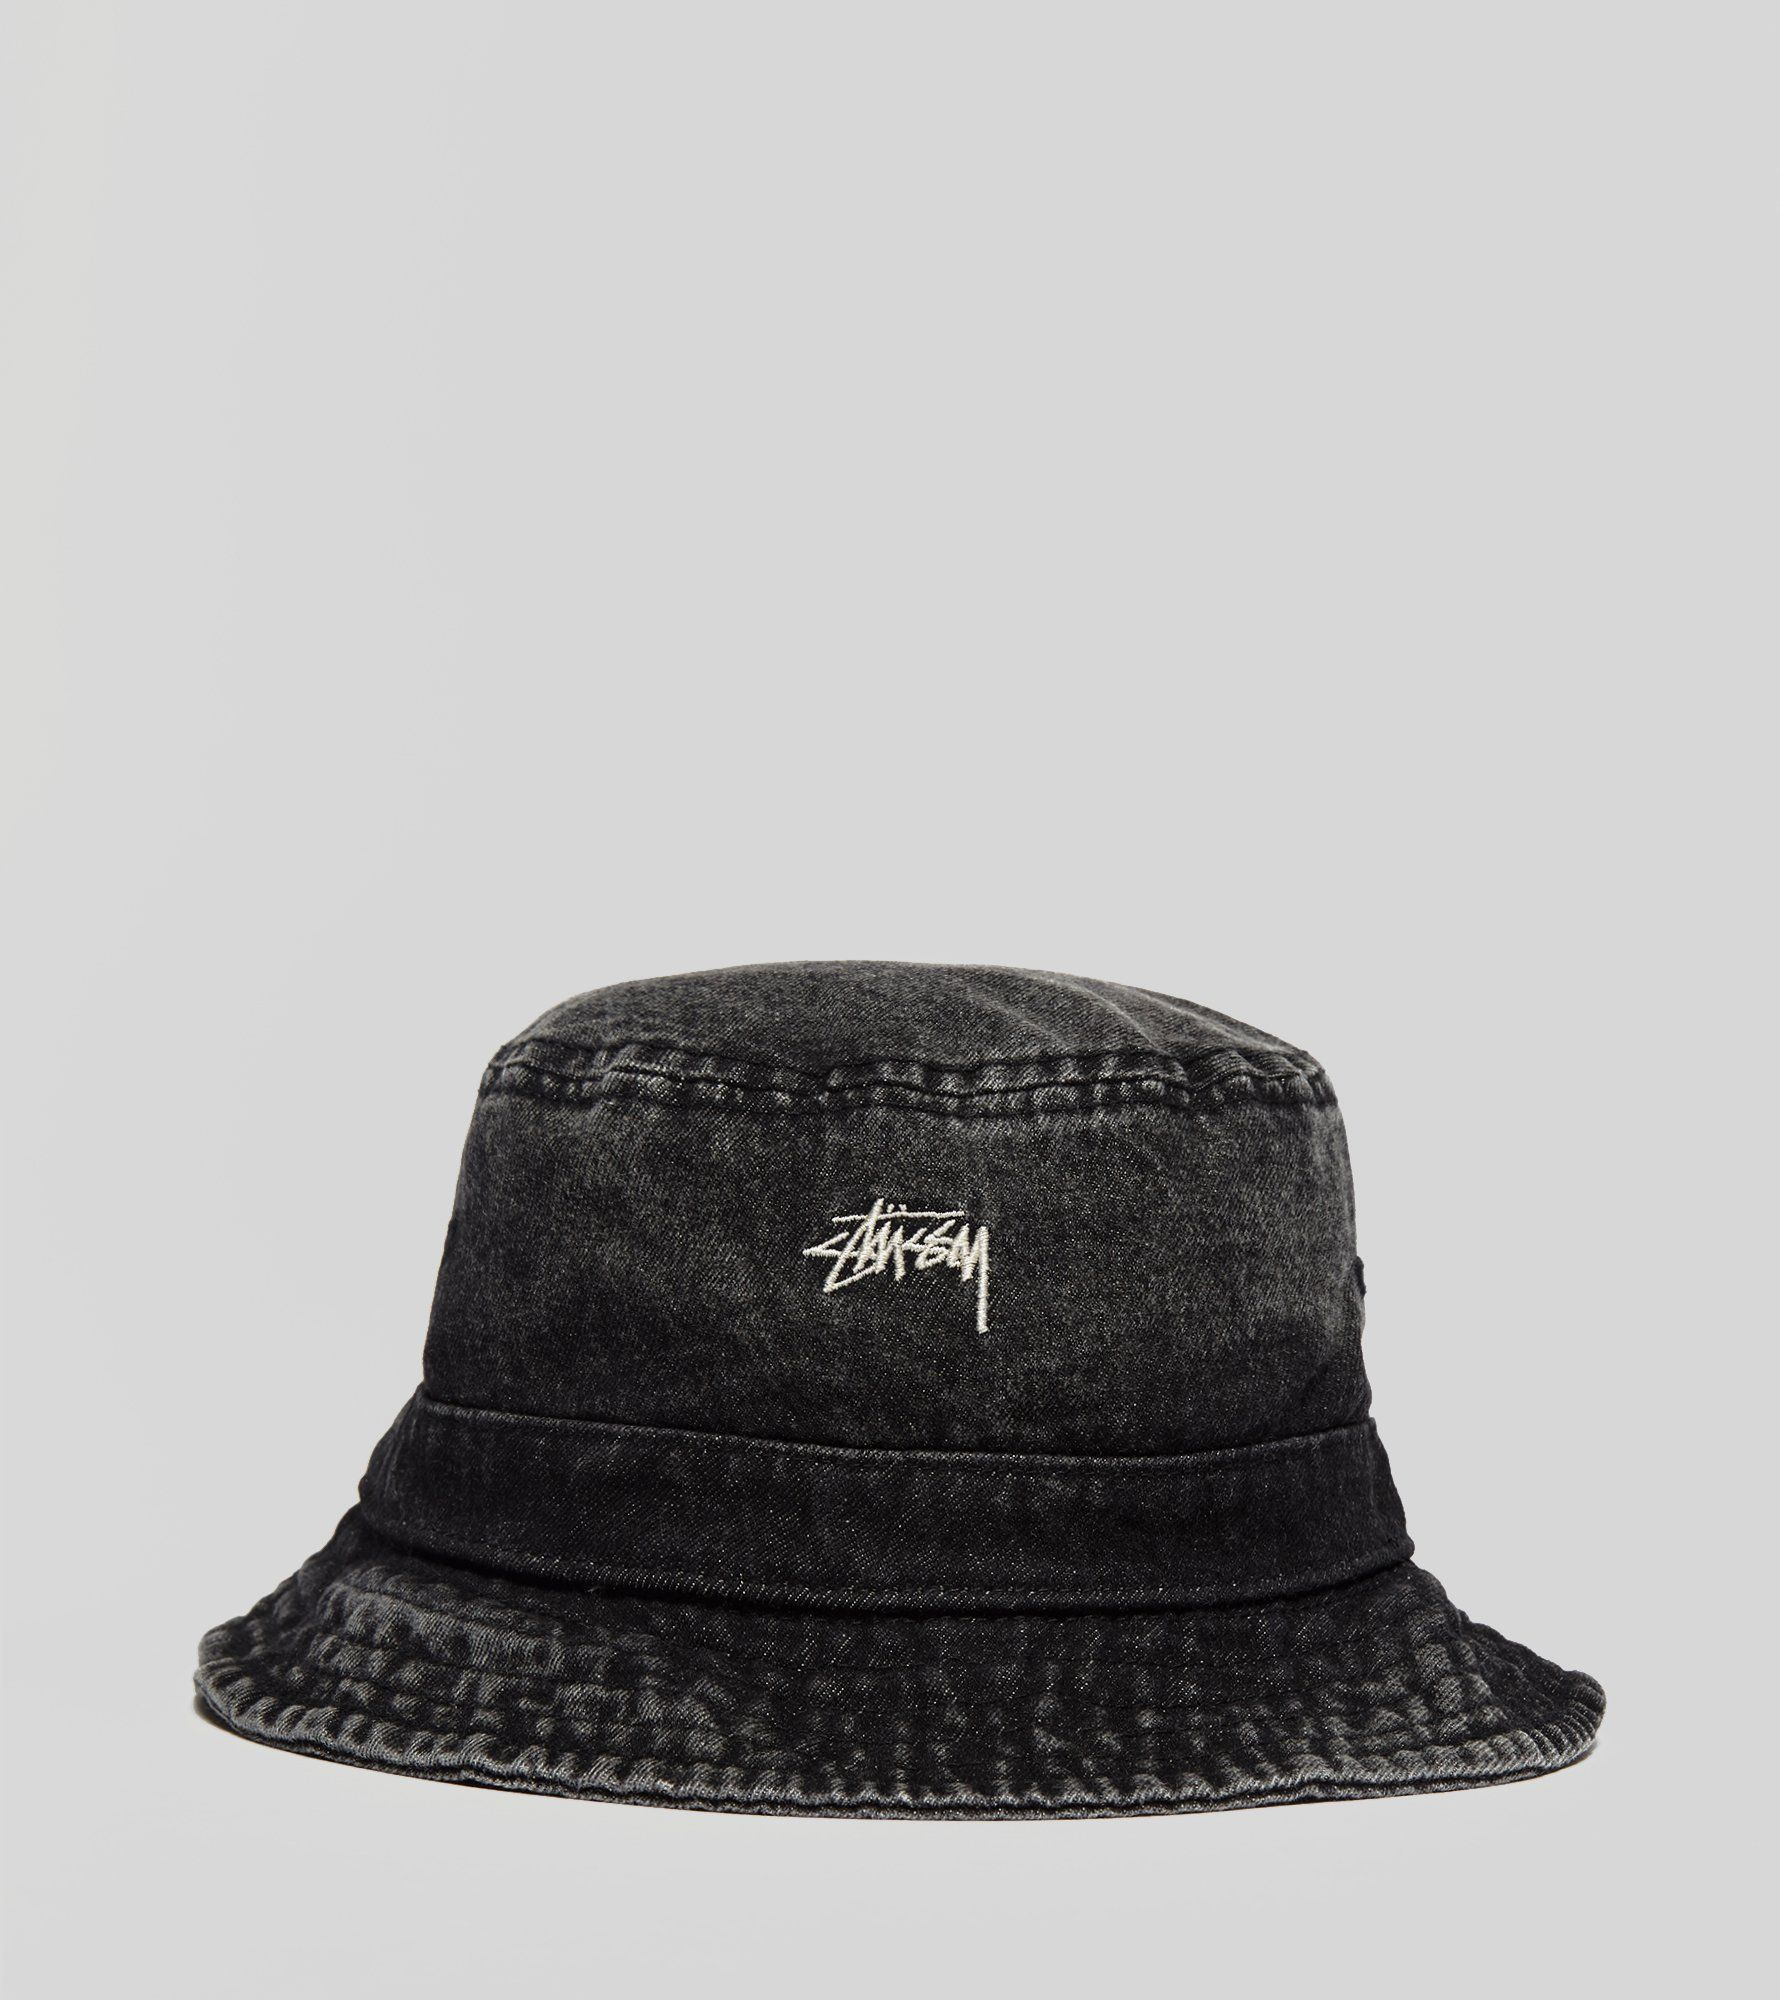 ... coupon for 50 off stussy washed denim bucket hat f3770 e2e0d australia  air jordan bucket hat ... 1691545cdd4